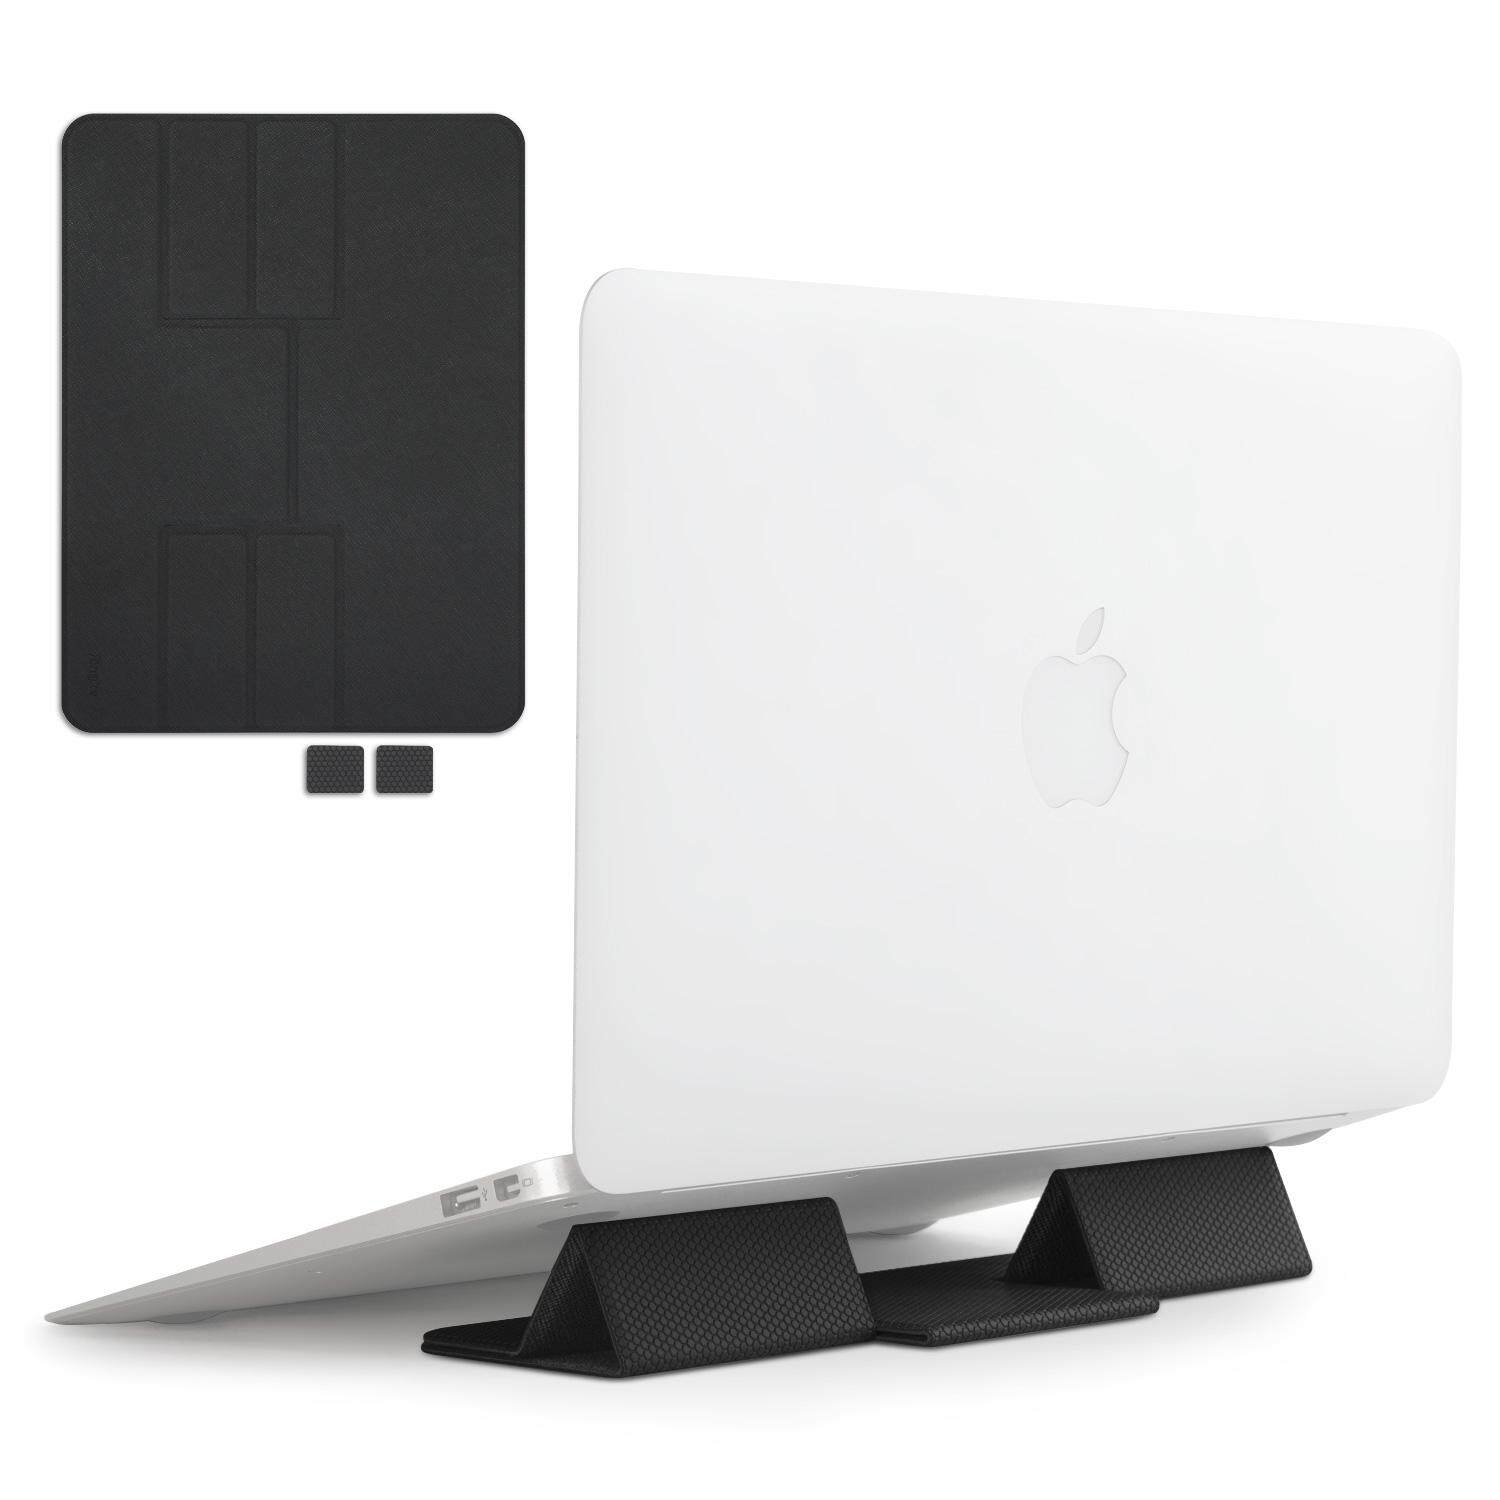 Ringke Folding Stand Portable and Foldable Laptop Stand for Desktop MacBook Notebook Computer iPad Tablet